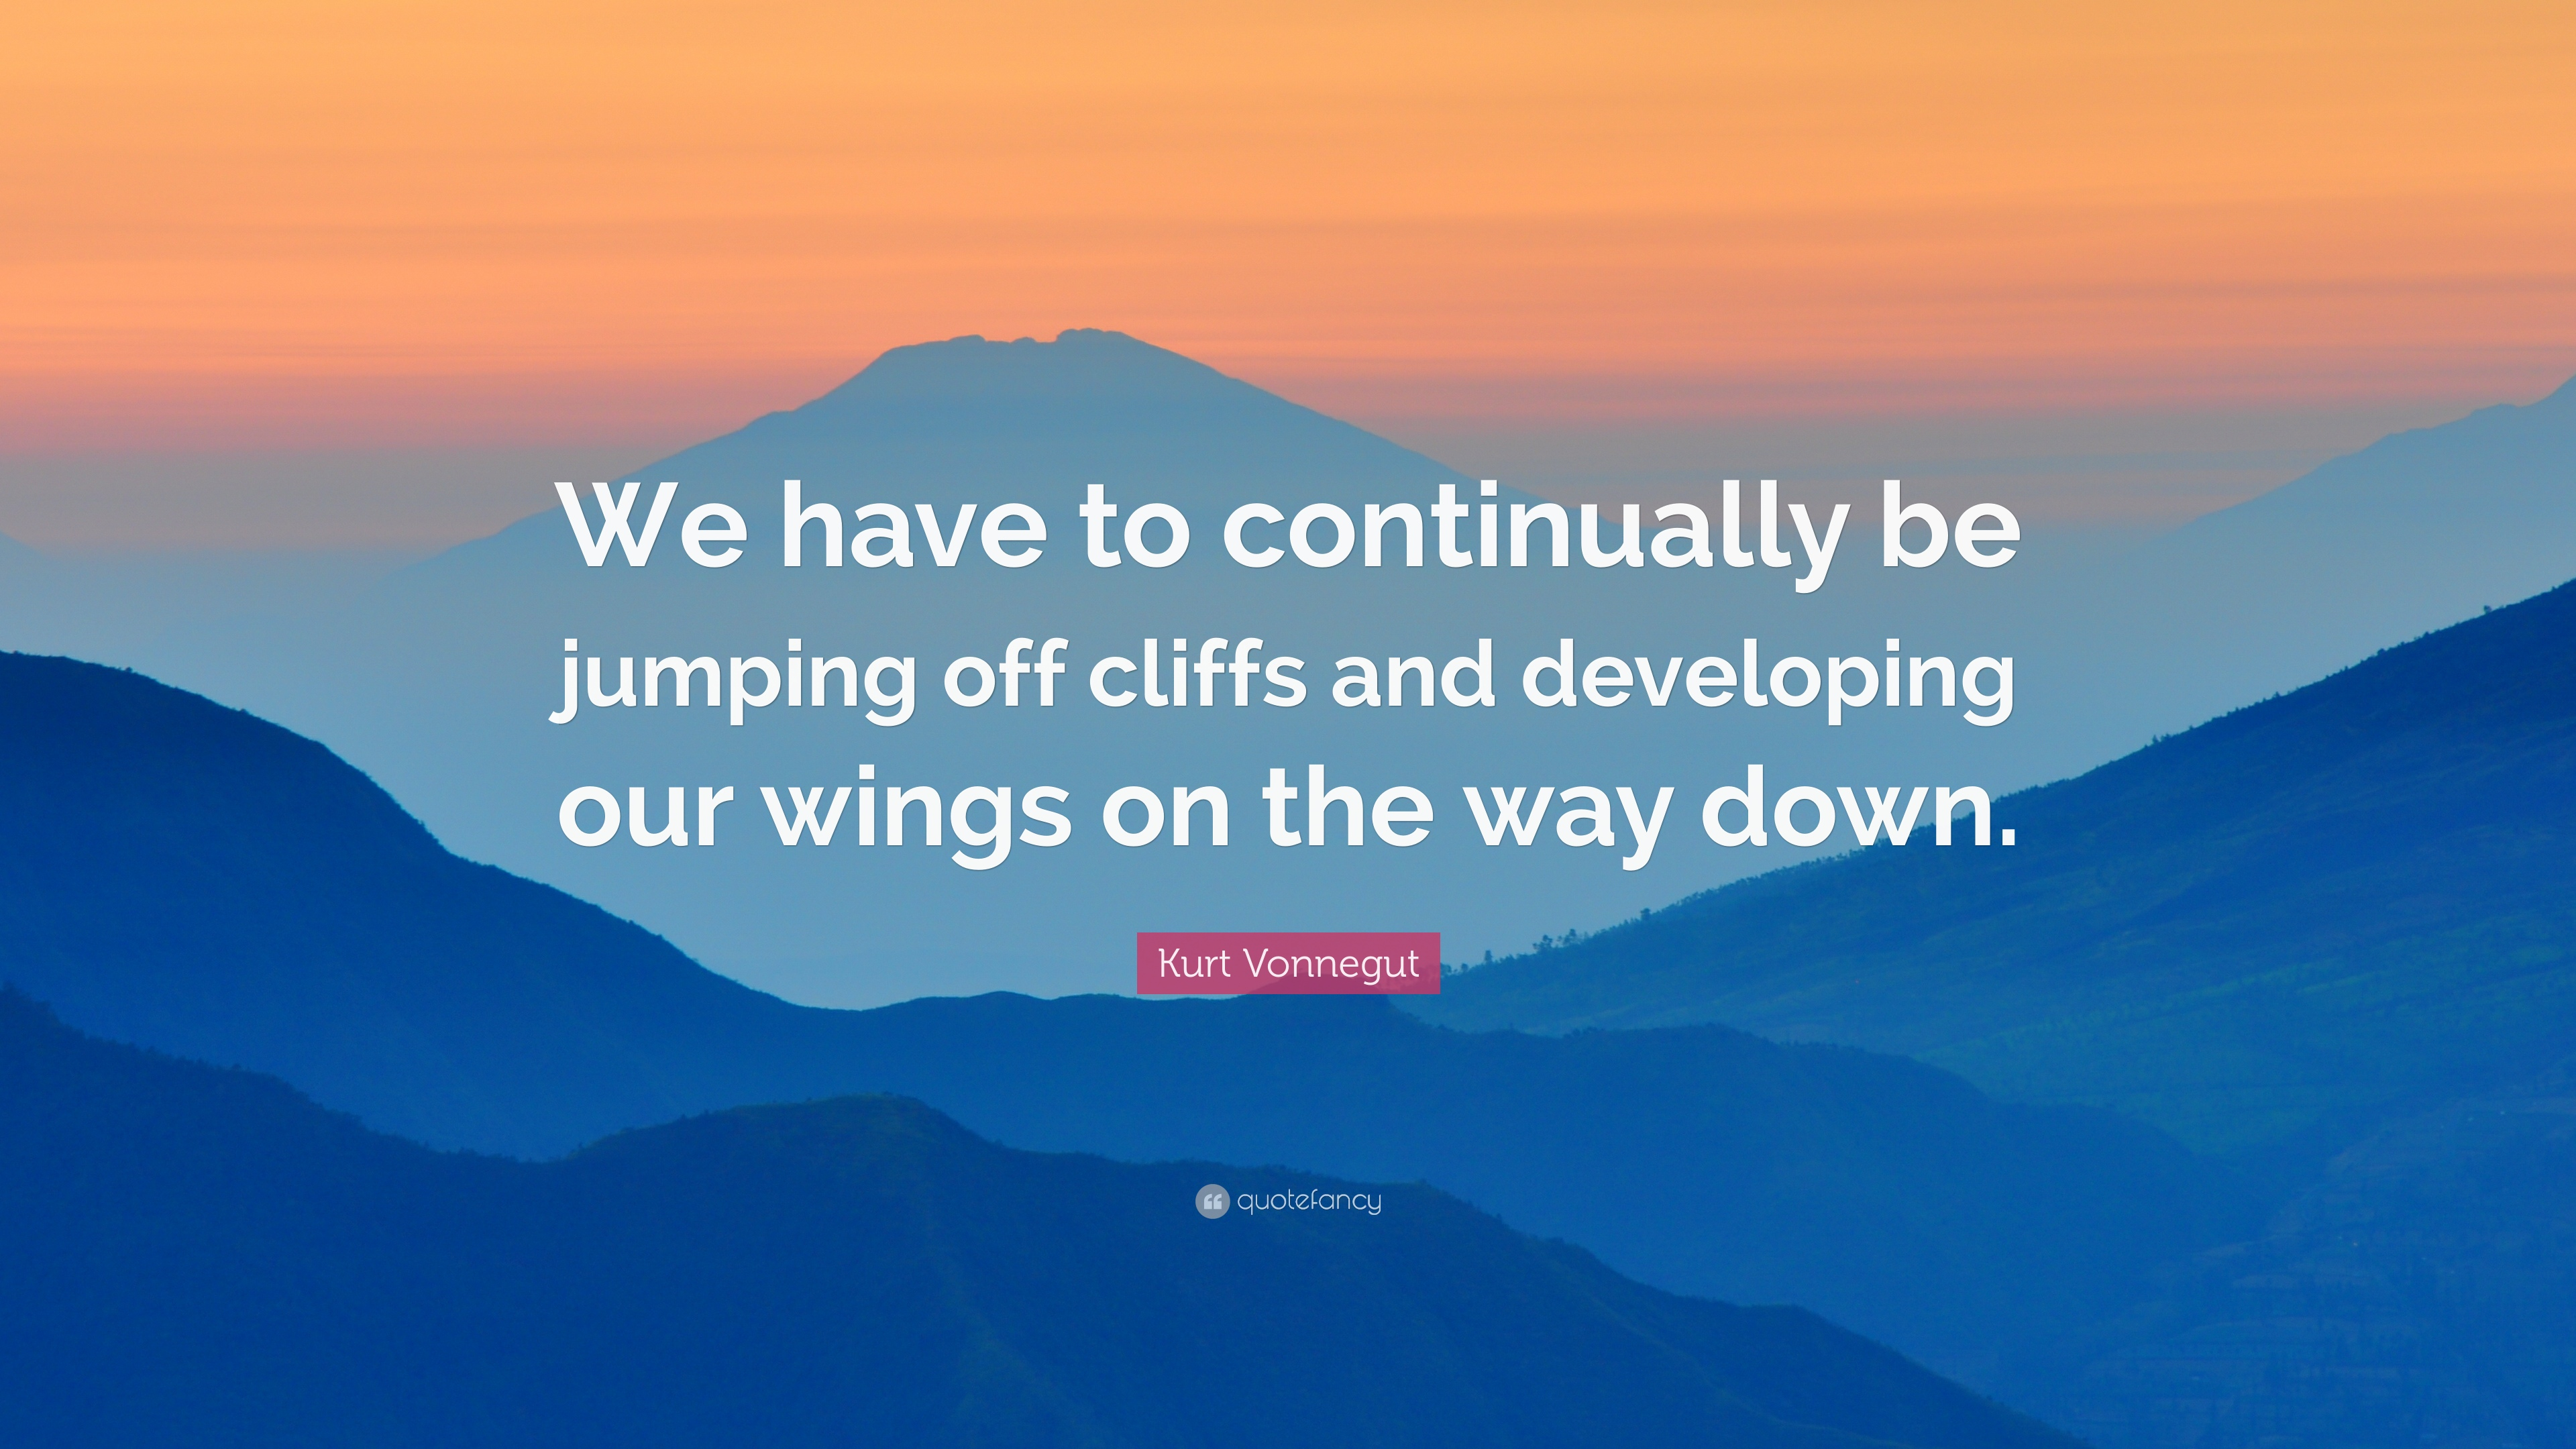 67272-Kurt-Vonnegut-Quote-We-have-to-continually-be-jumping-off-cliffs.jpg